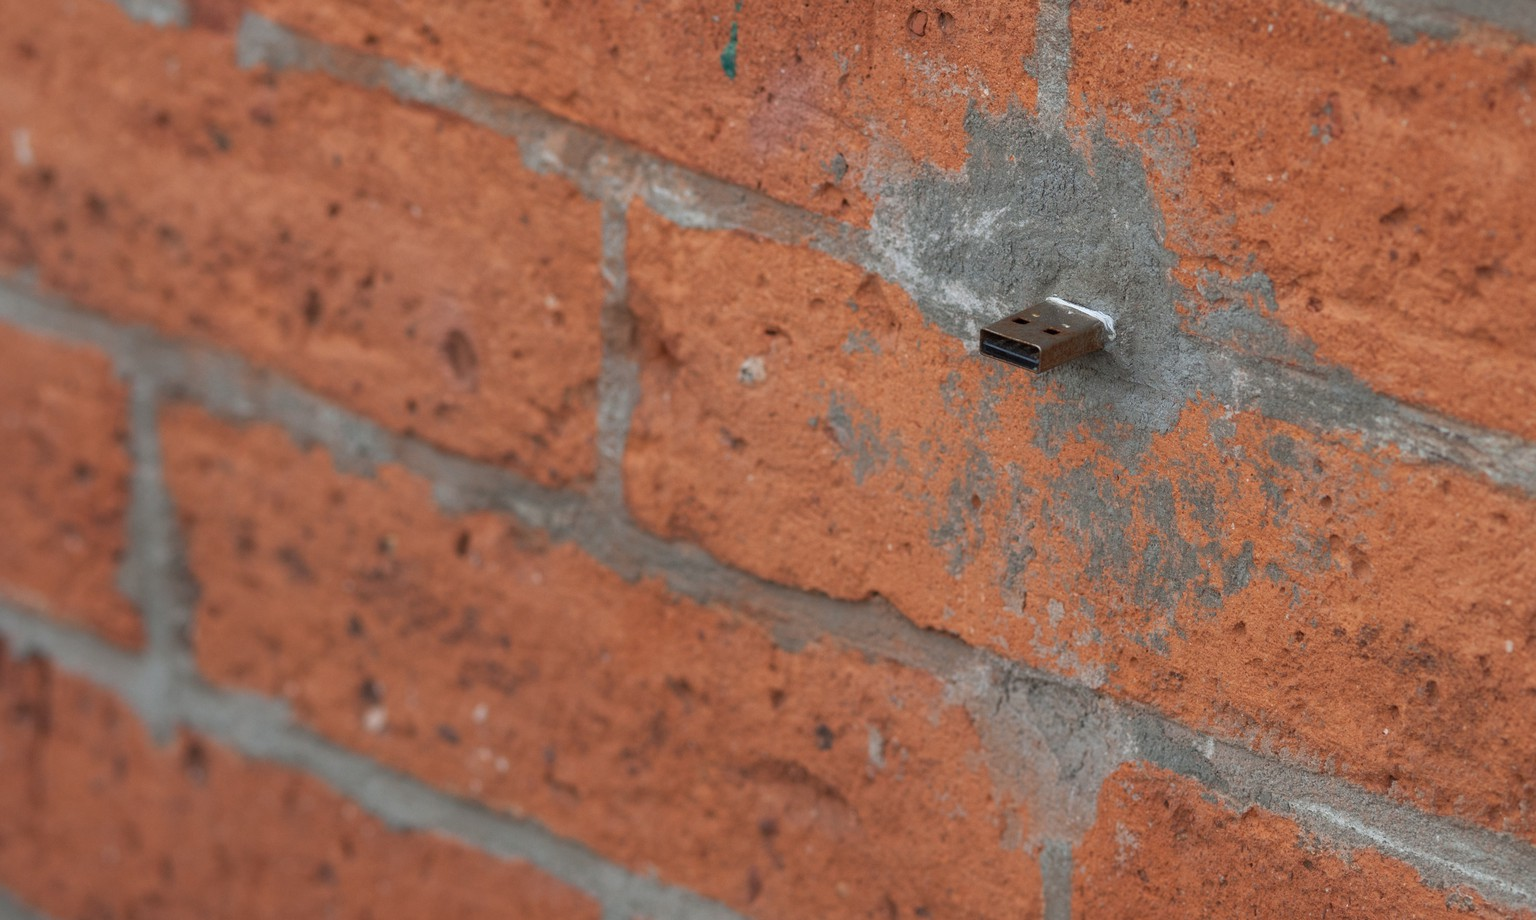 A USB drive is embedded in the brickwork on Third Avenue in Brooklyn.